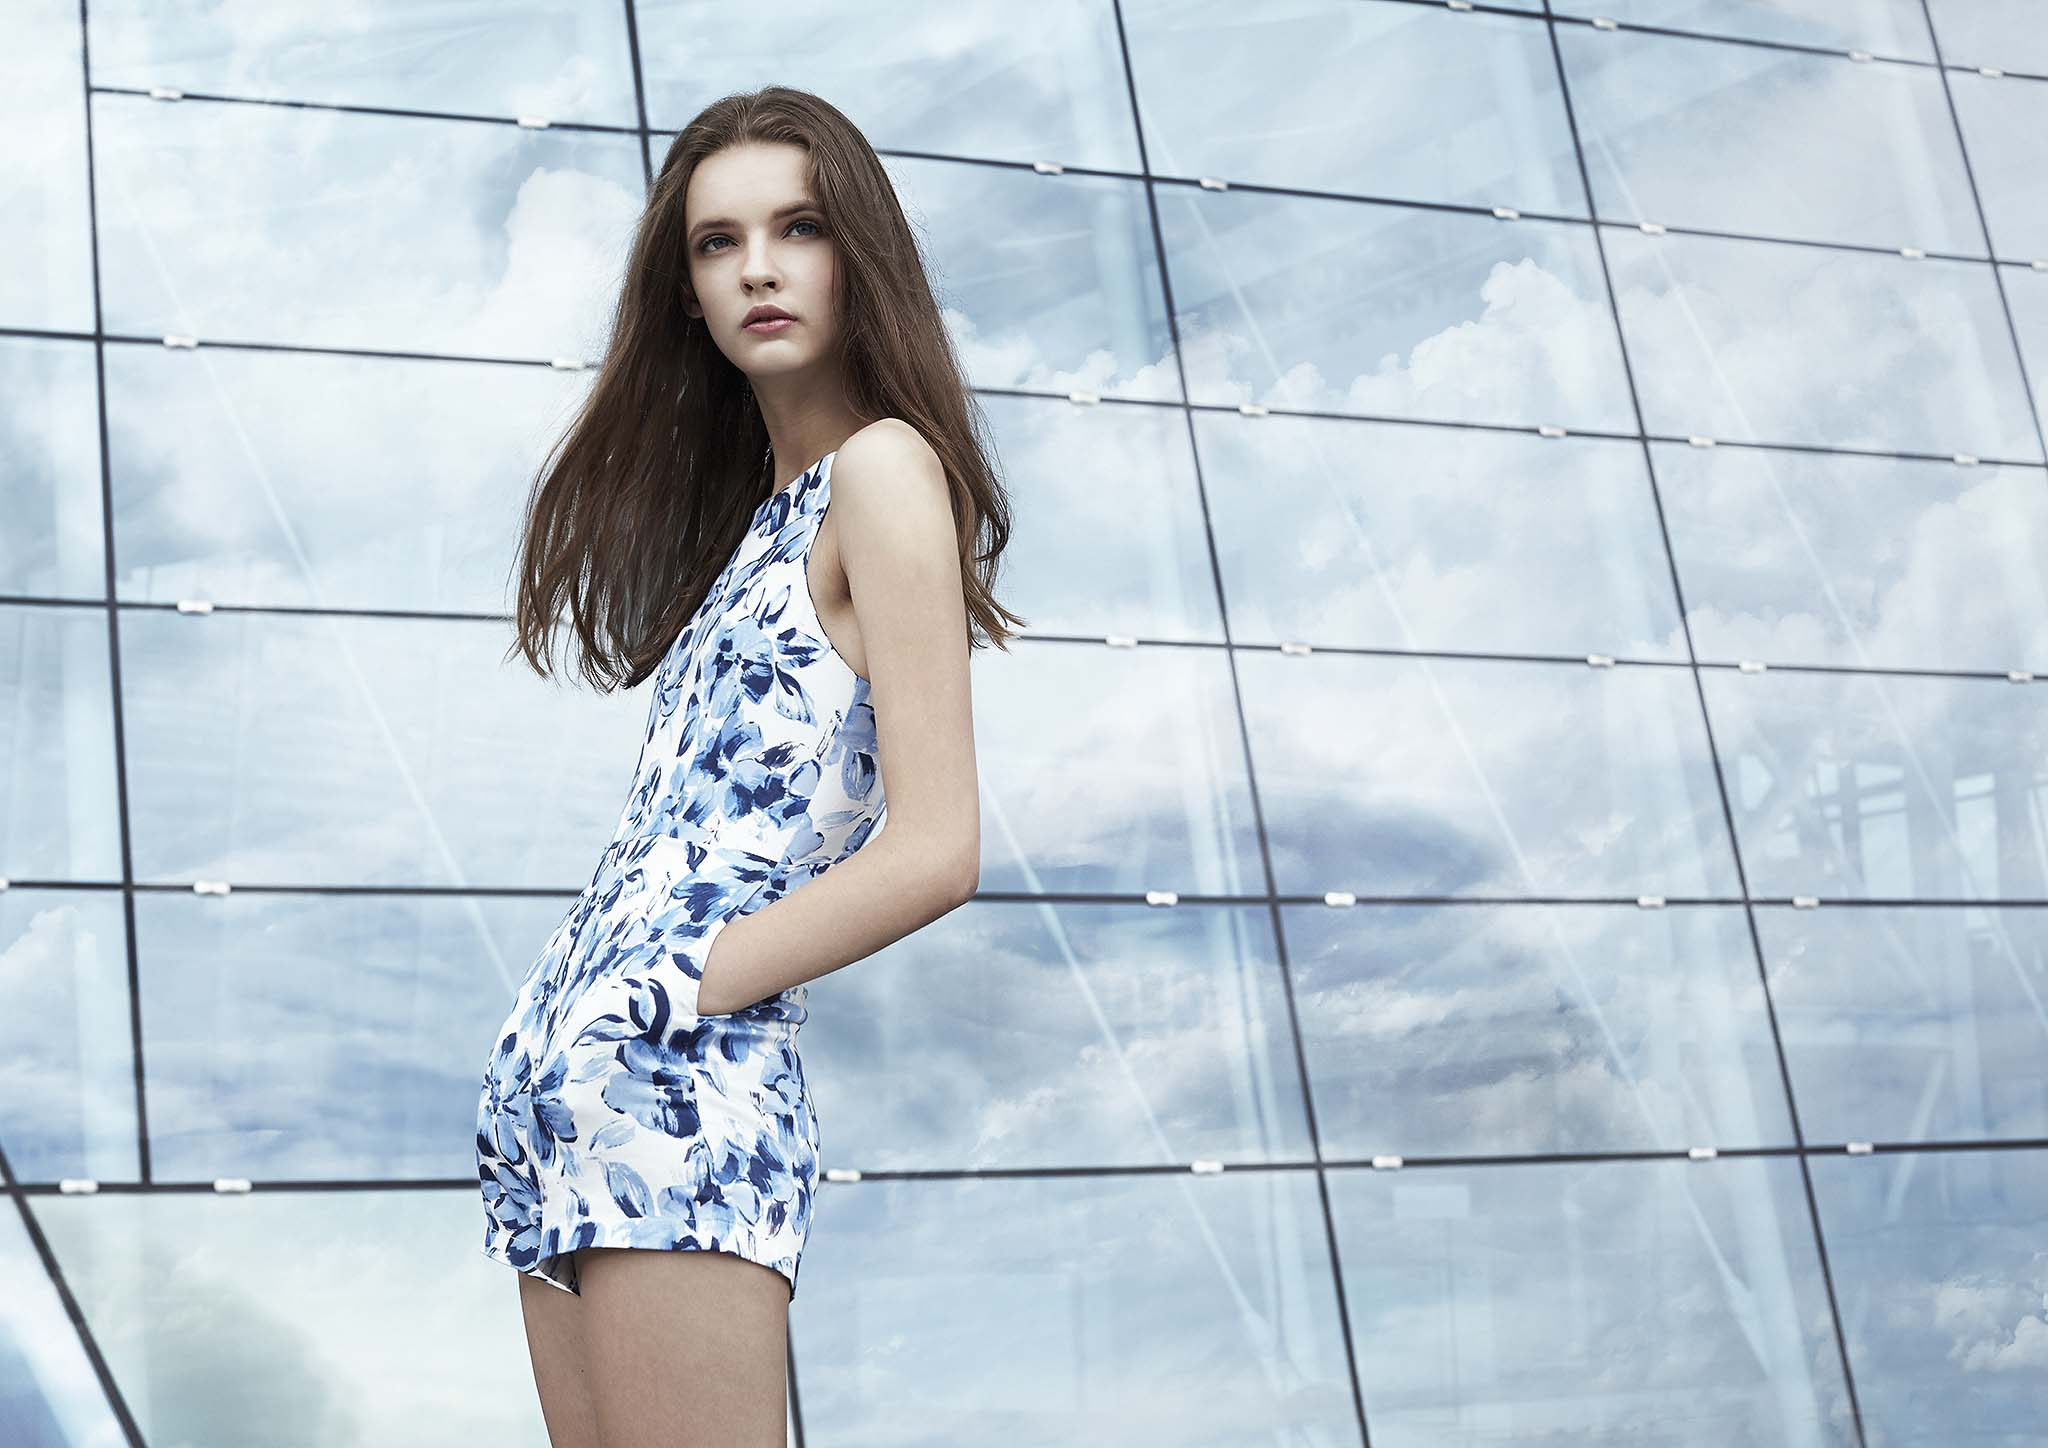 outdoor-fashion-photography-4